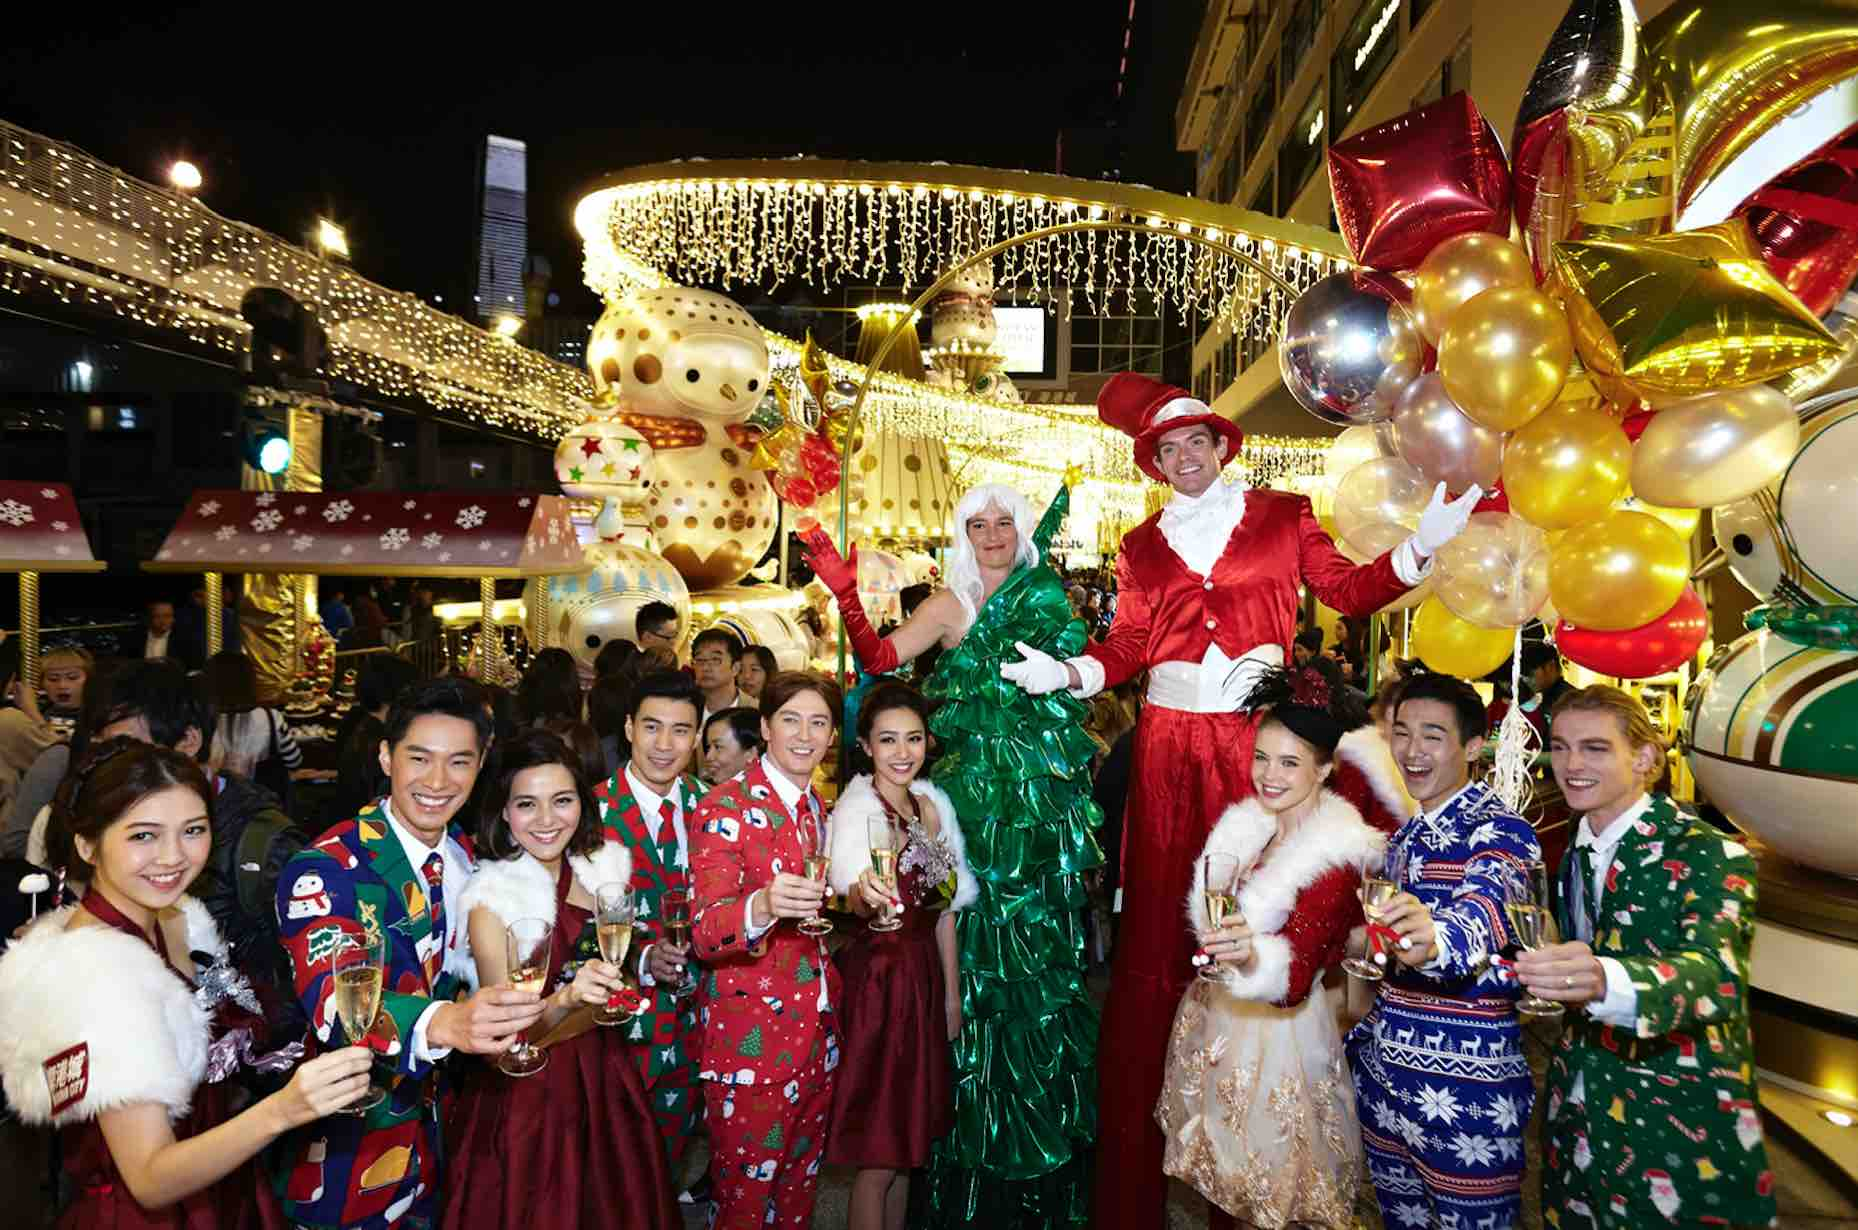 celebrate-christmas-together-at-hong-kong-harbour-city-aspirantsg